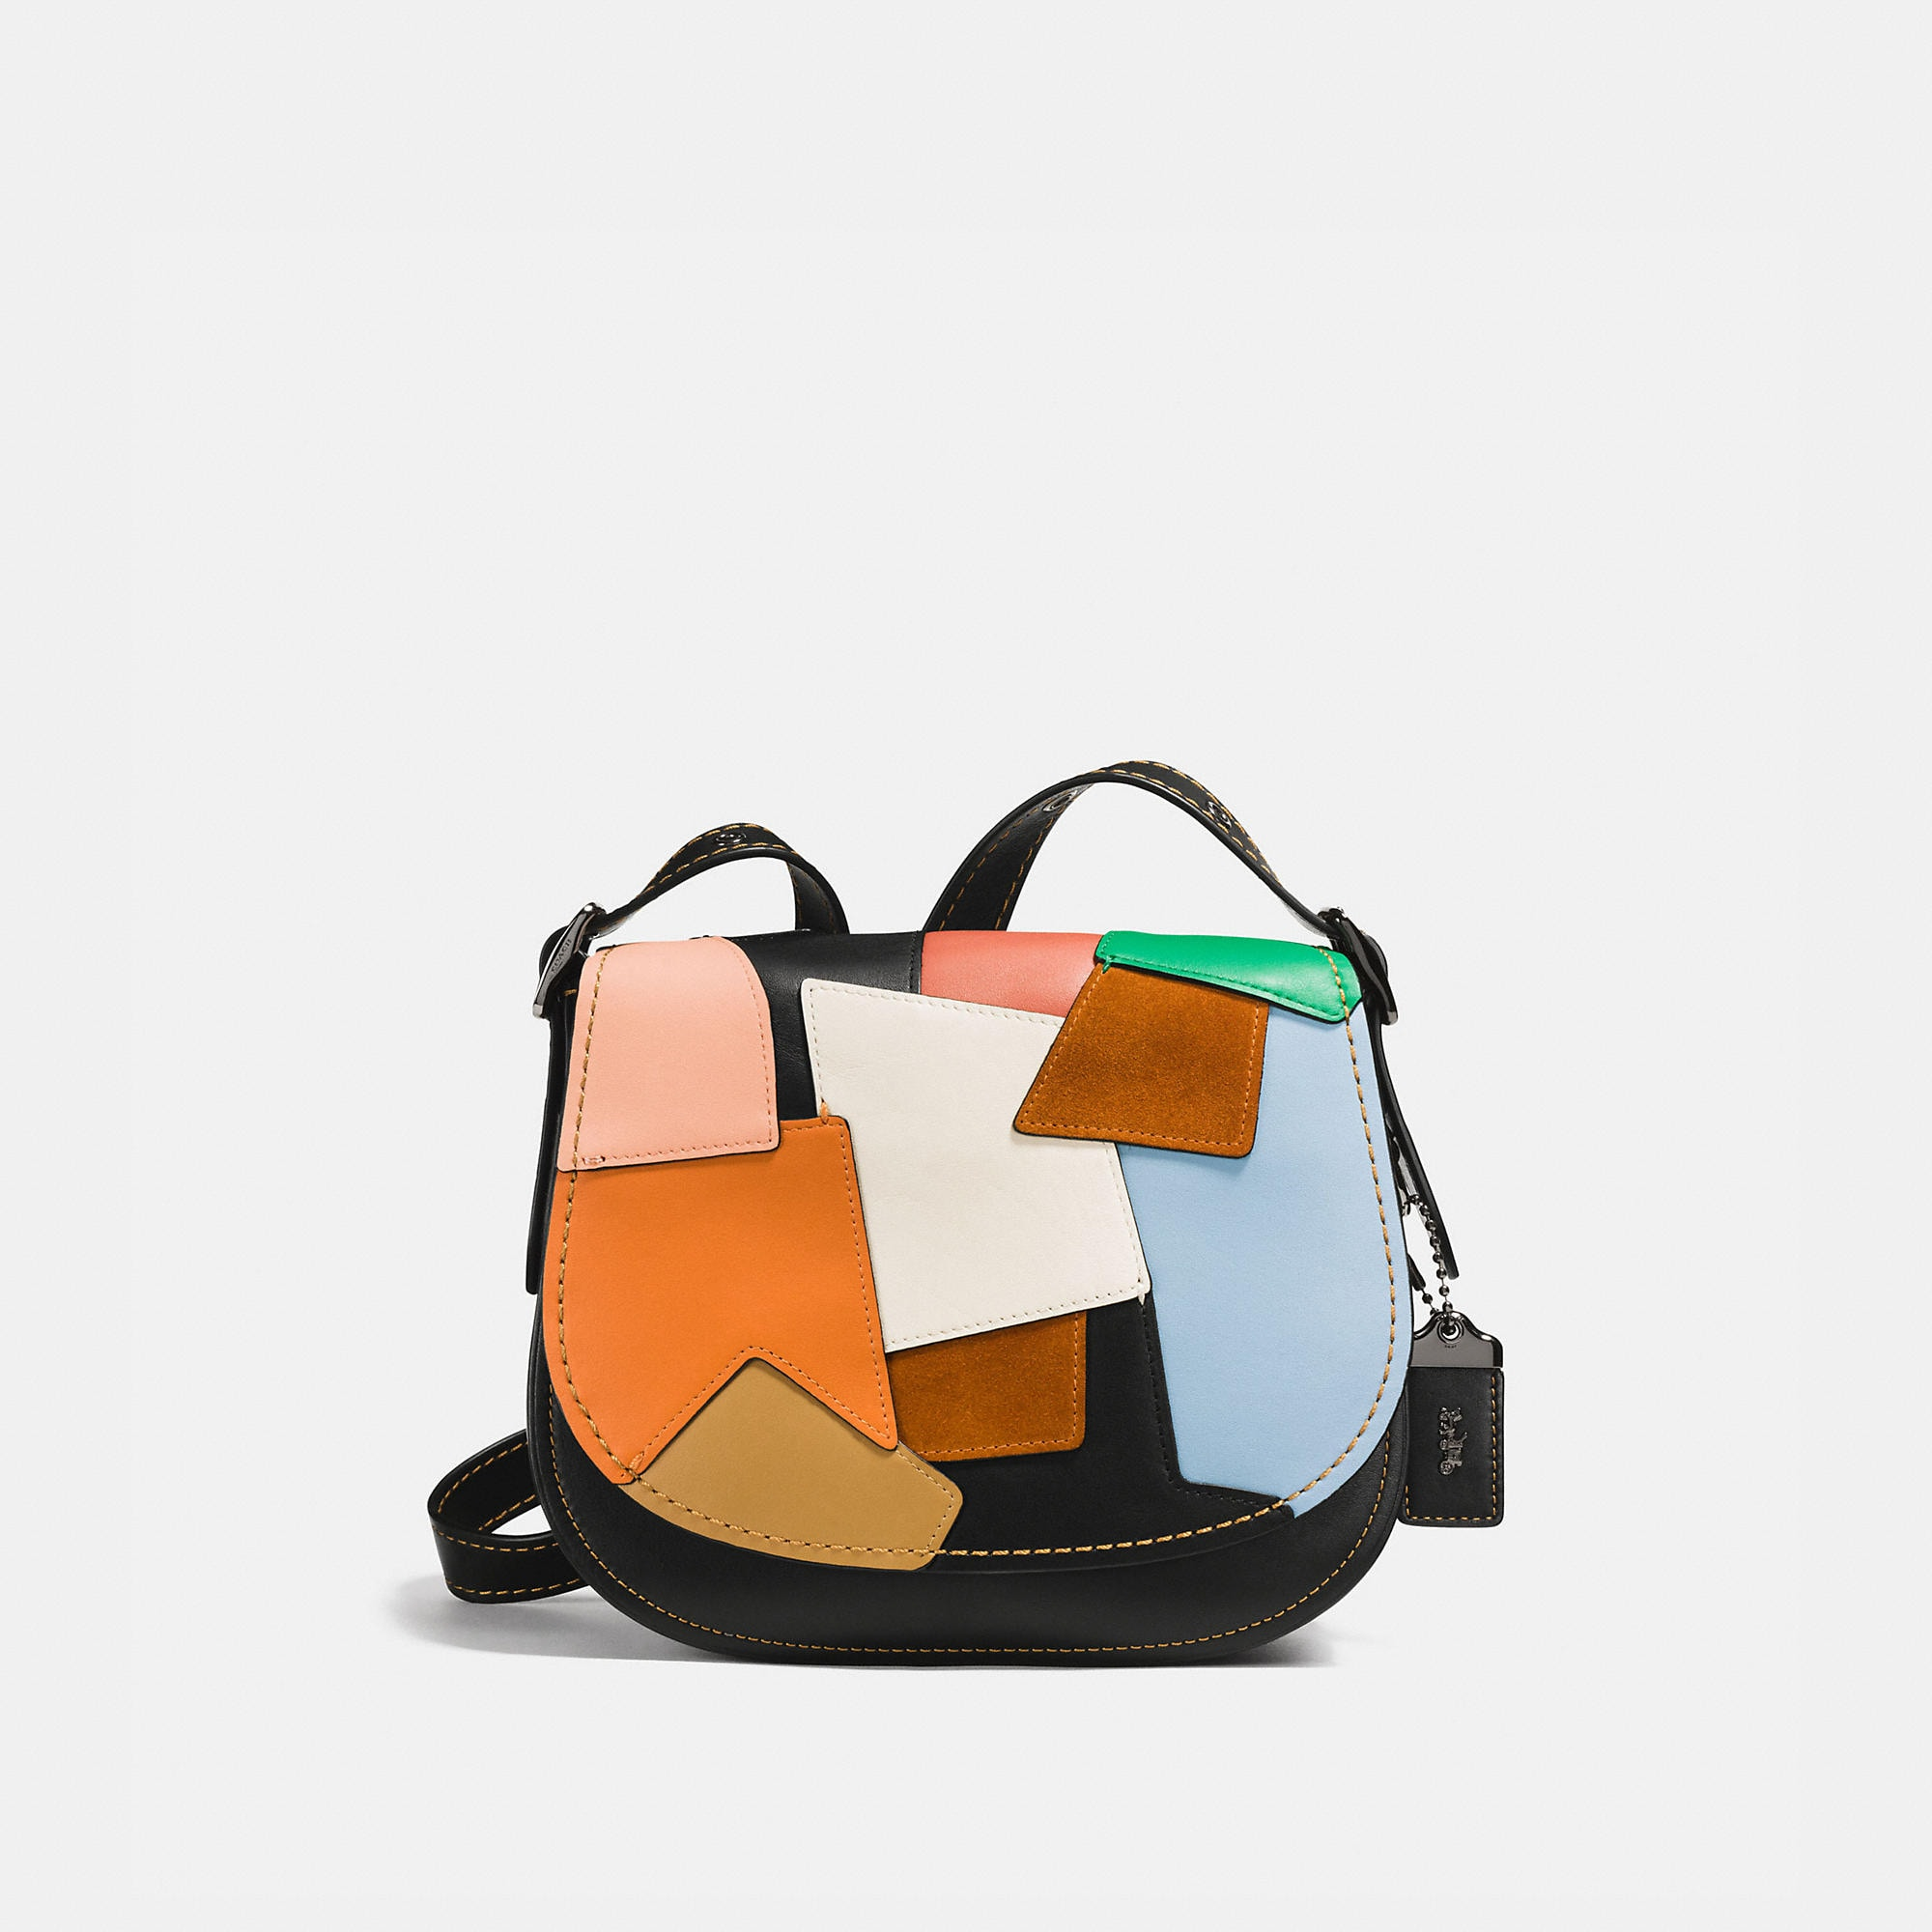 Coach 1941 Saddle Bag 23 In Patchwork Leather